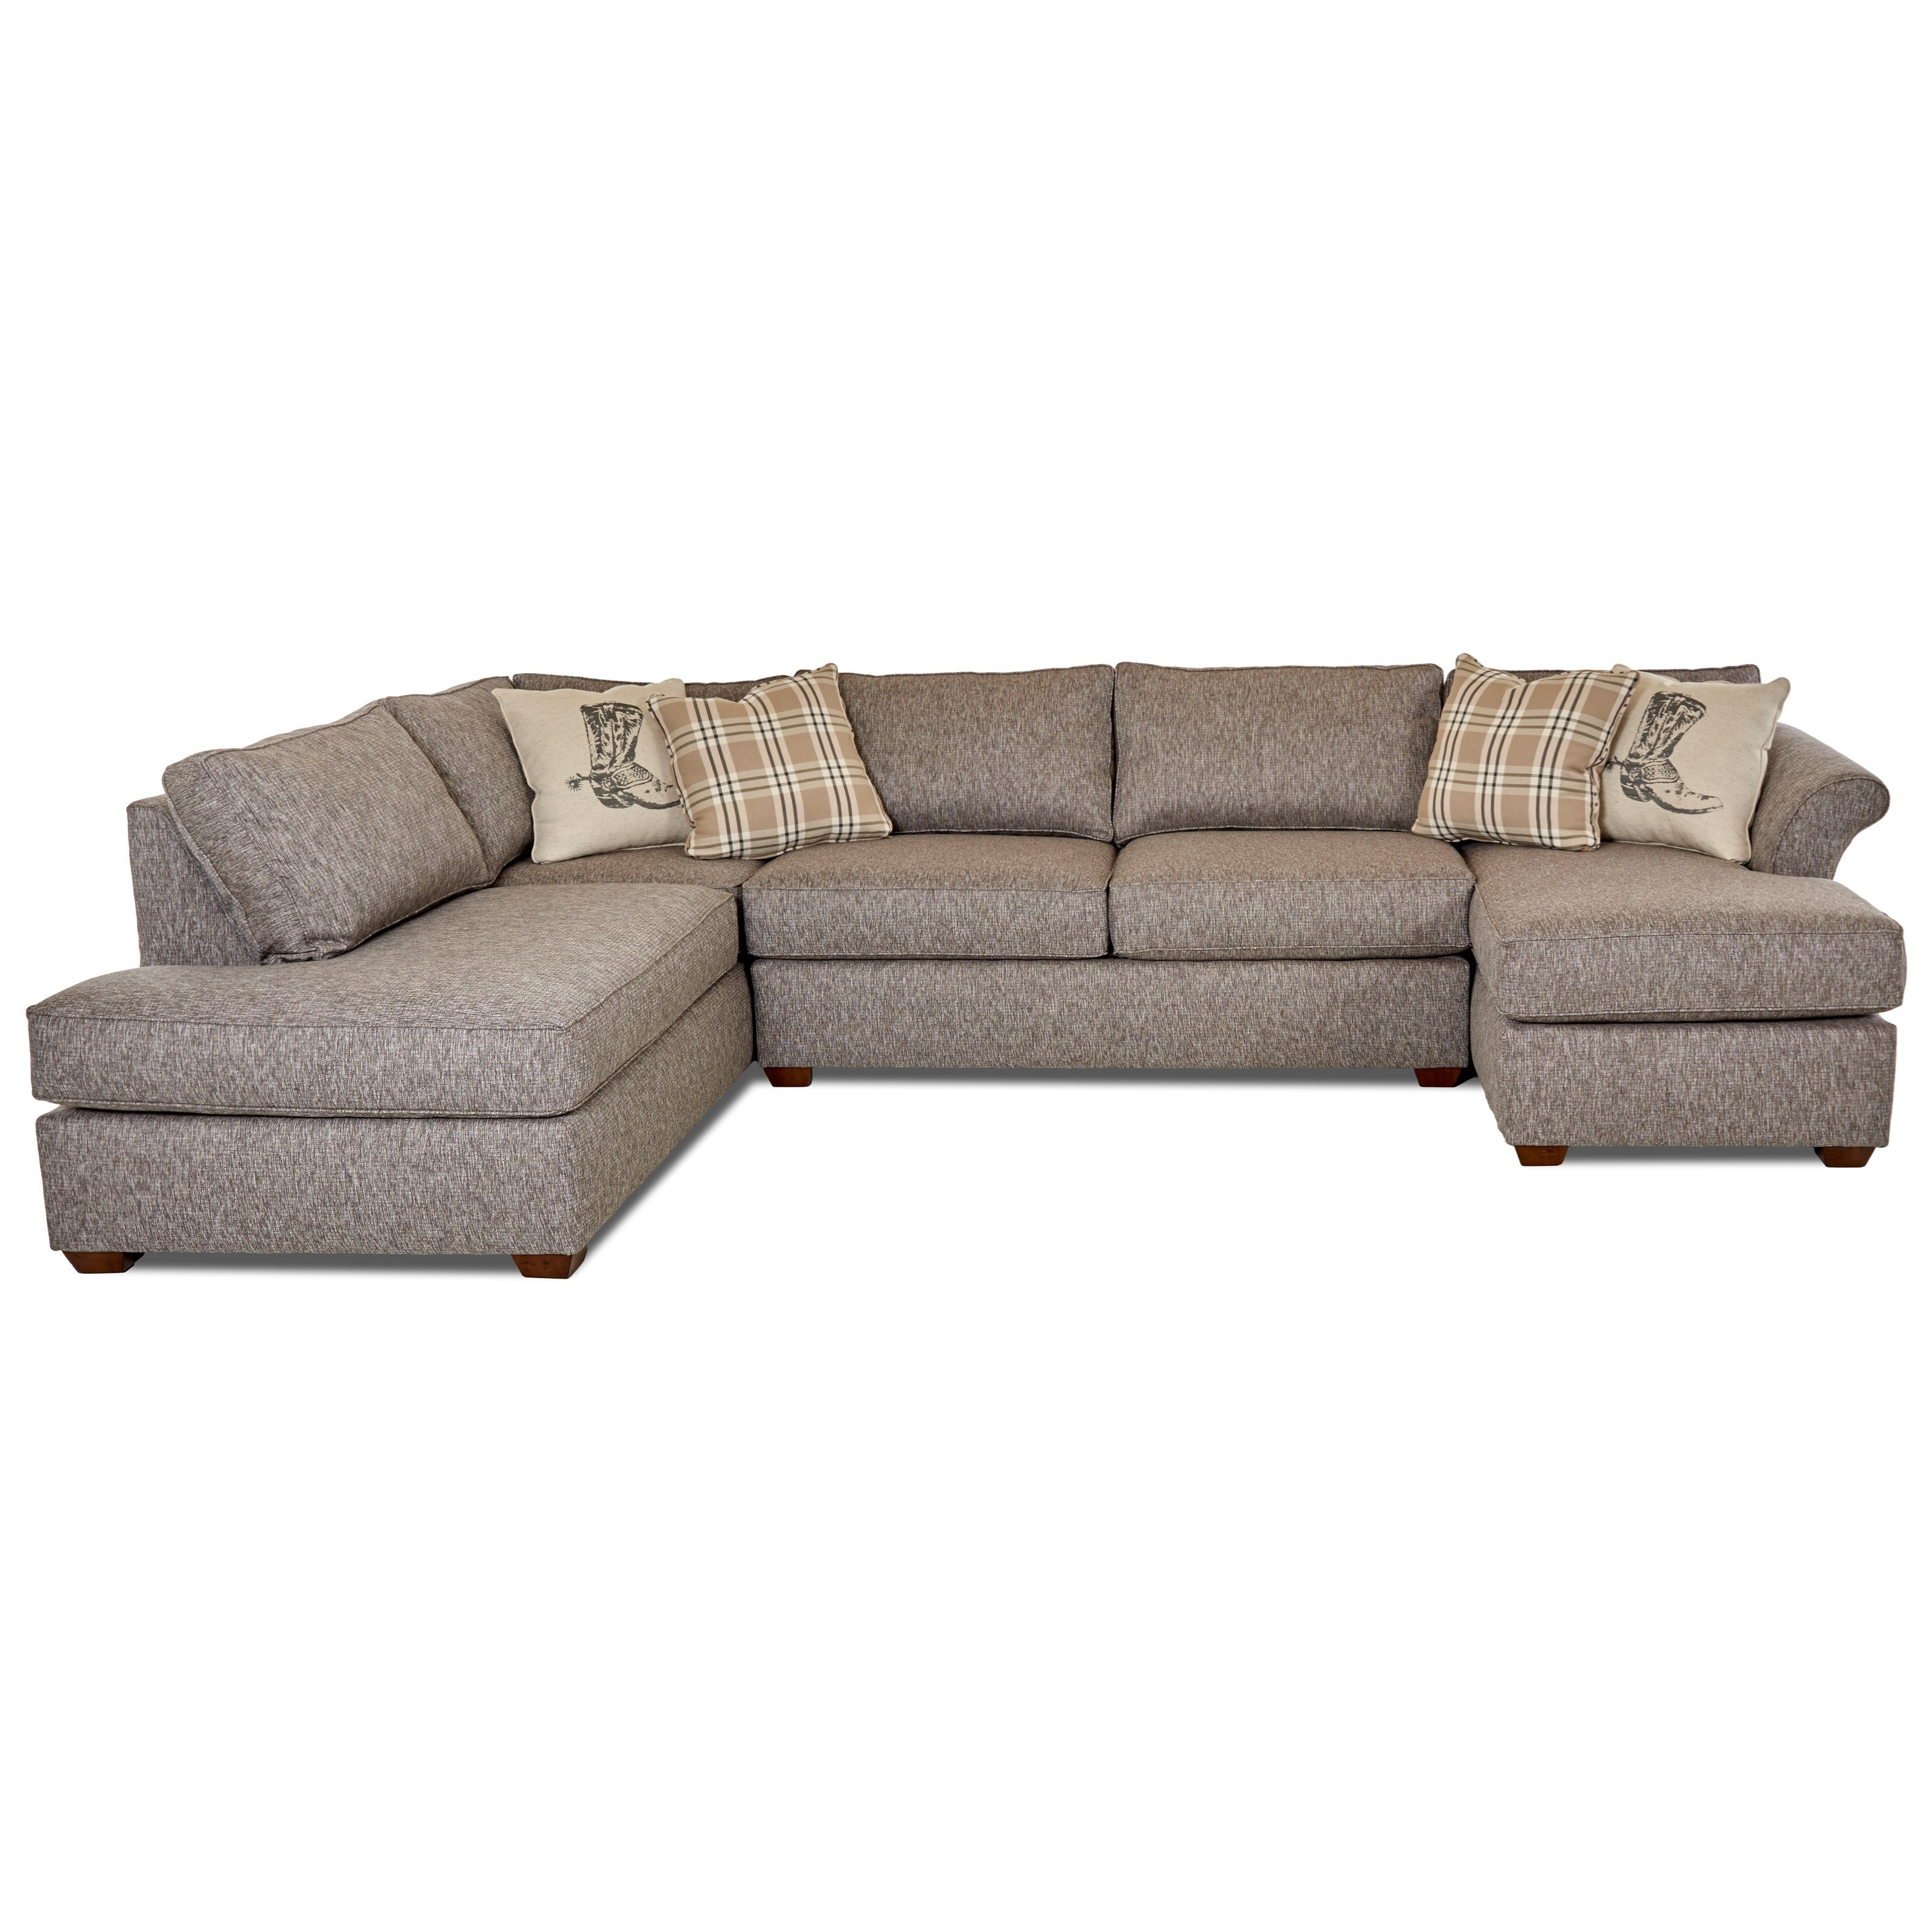 Jaxon 3 Pc Sectional Sofa by Klaussner at Pilgrim Furniture City